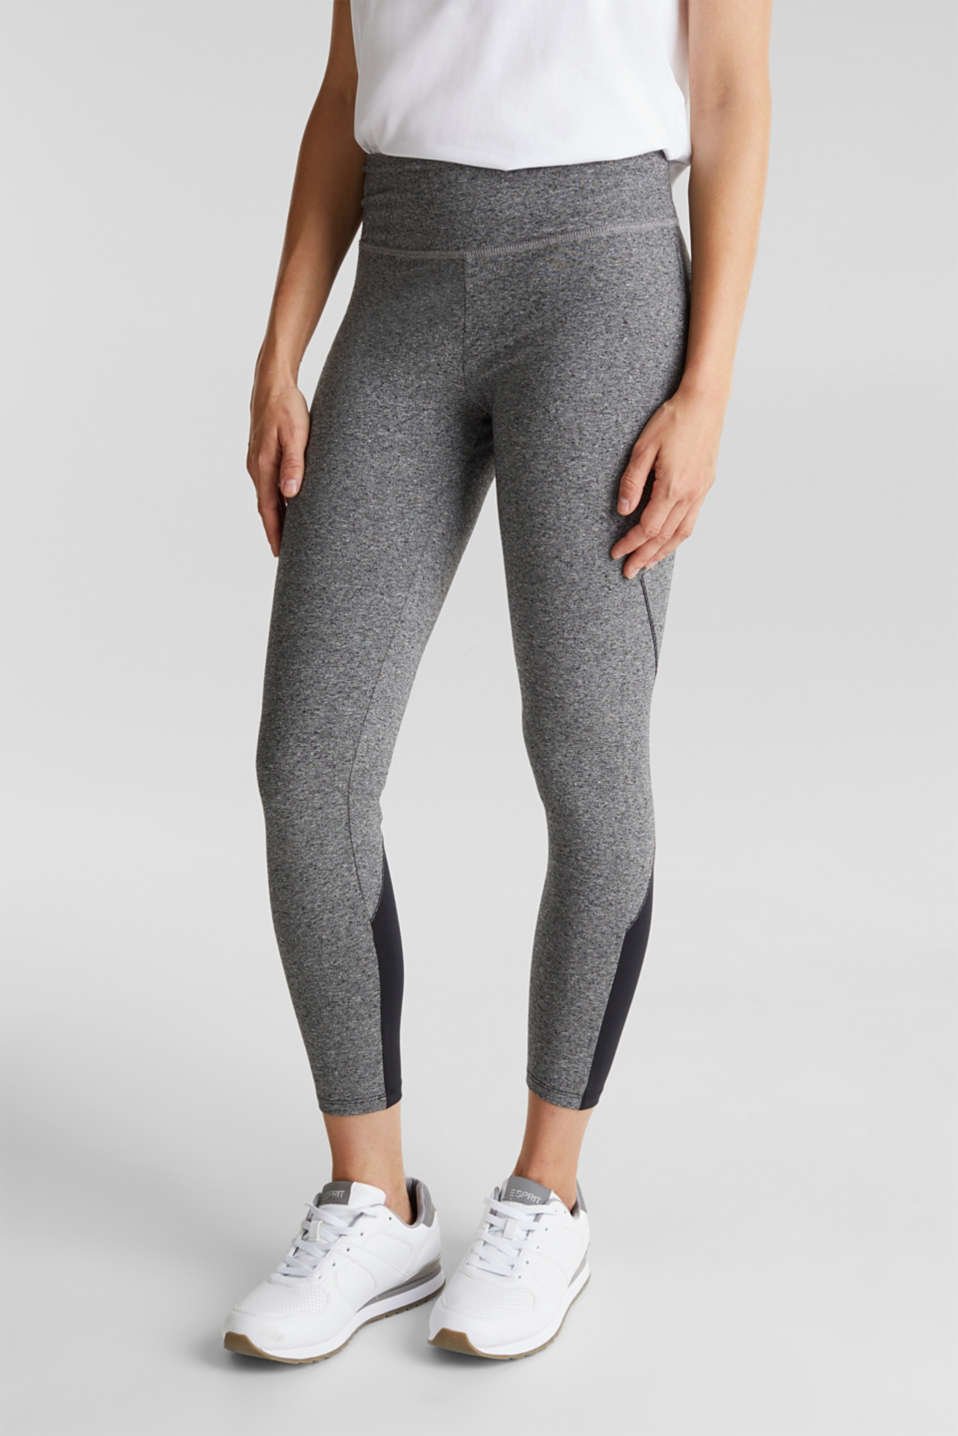 Esprit - Two-tone leggings, organic cotton